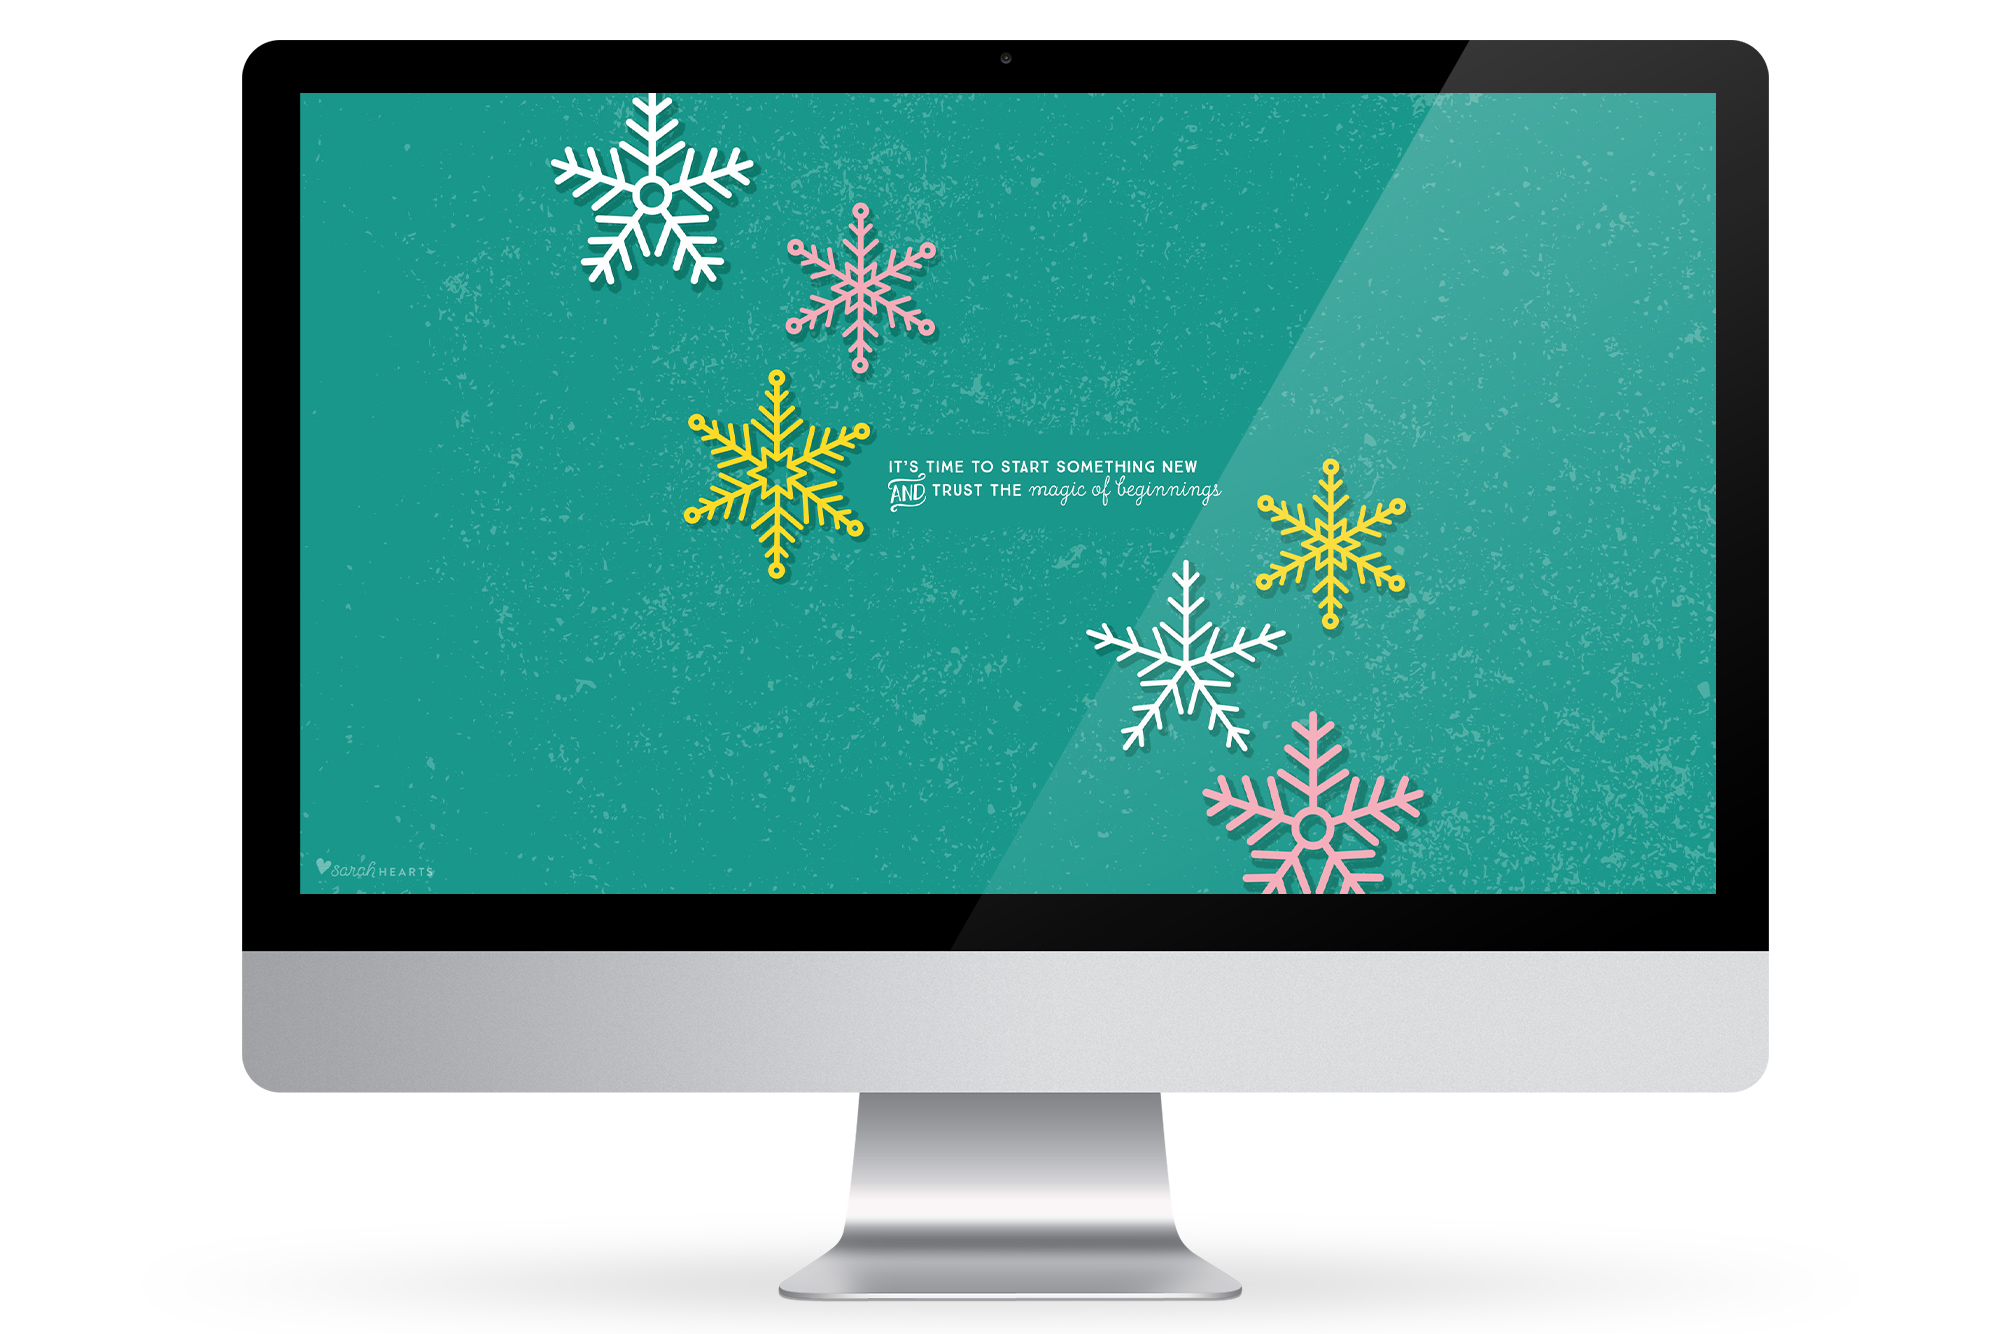 Celebrate winter on your devices with this free snowflake wallpaper!